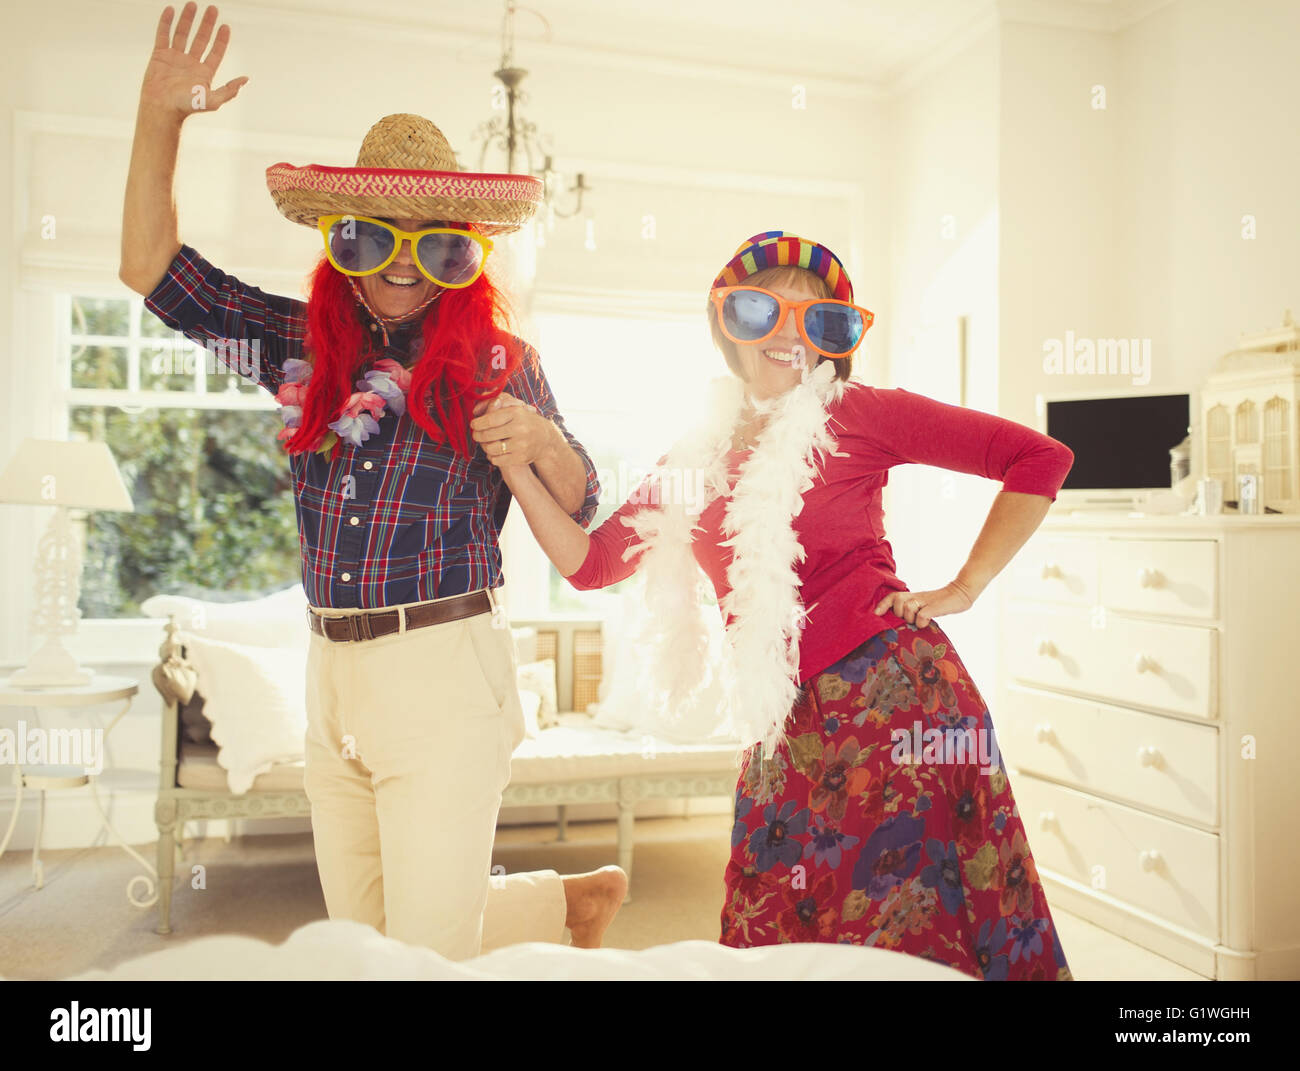 Portrait silly mature couple dancing in costumes - Stock Image